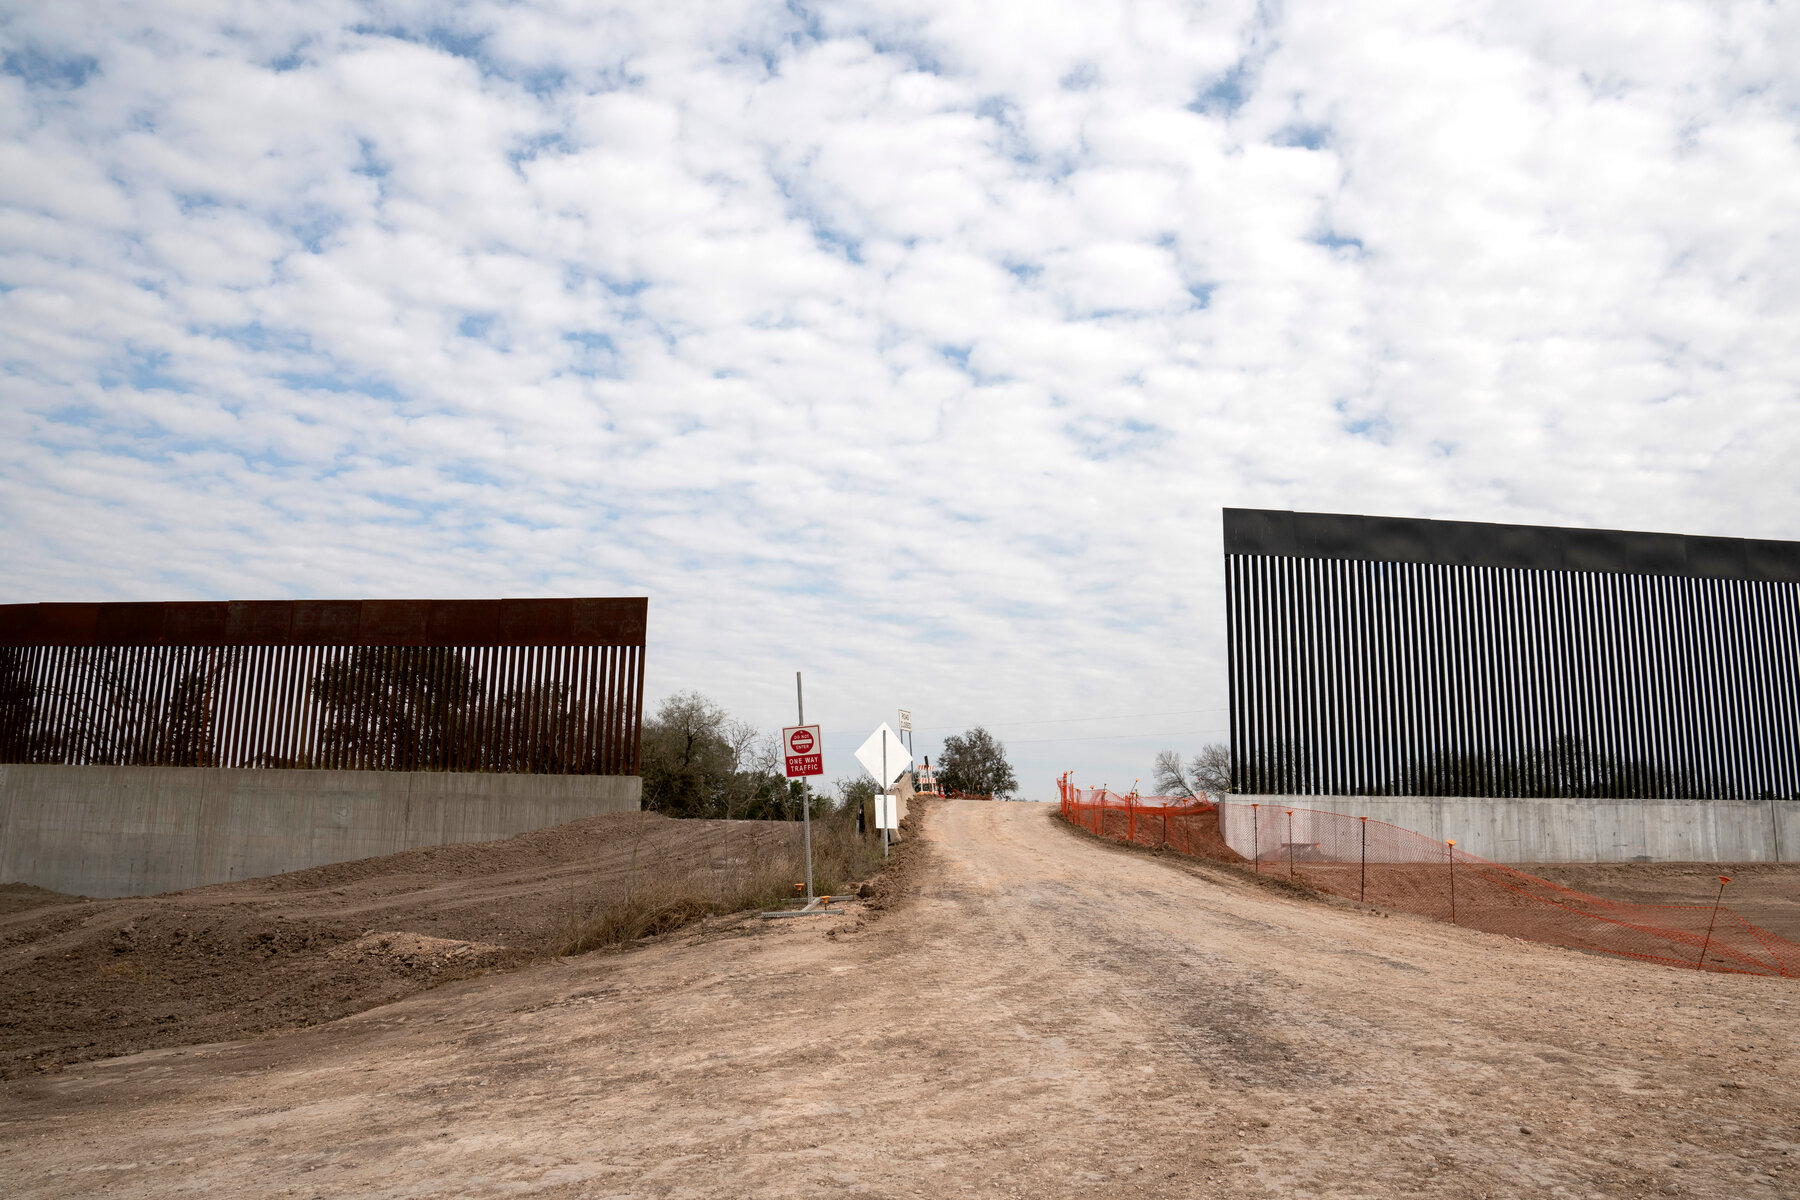 Gov. Greg Abbott Said Texas will build a border wall, People will get 5x money of Land!